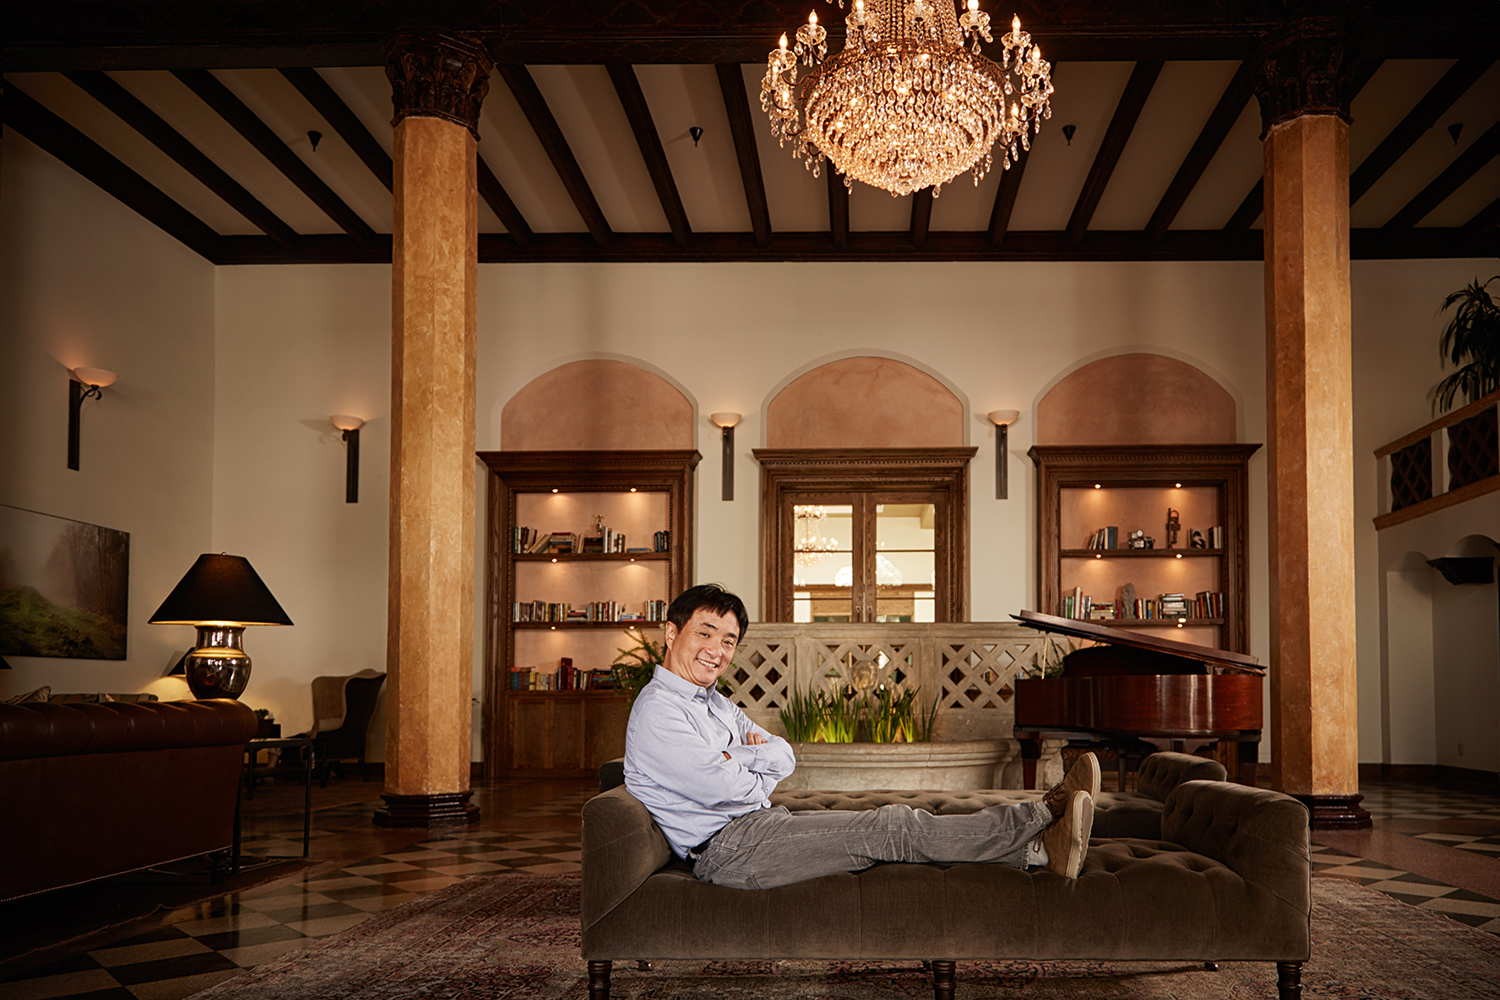 Mr. Lou inside the renovated Hotel Normandie (Photo: Rocco Ceselin for Commercial Observer).